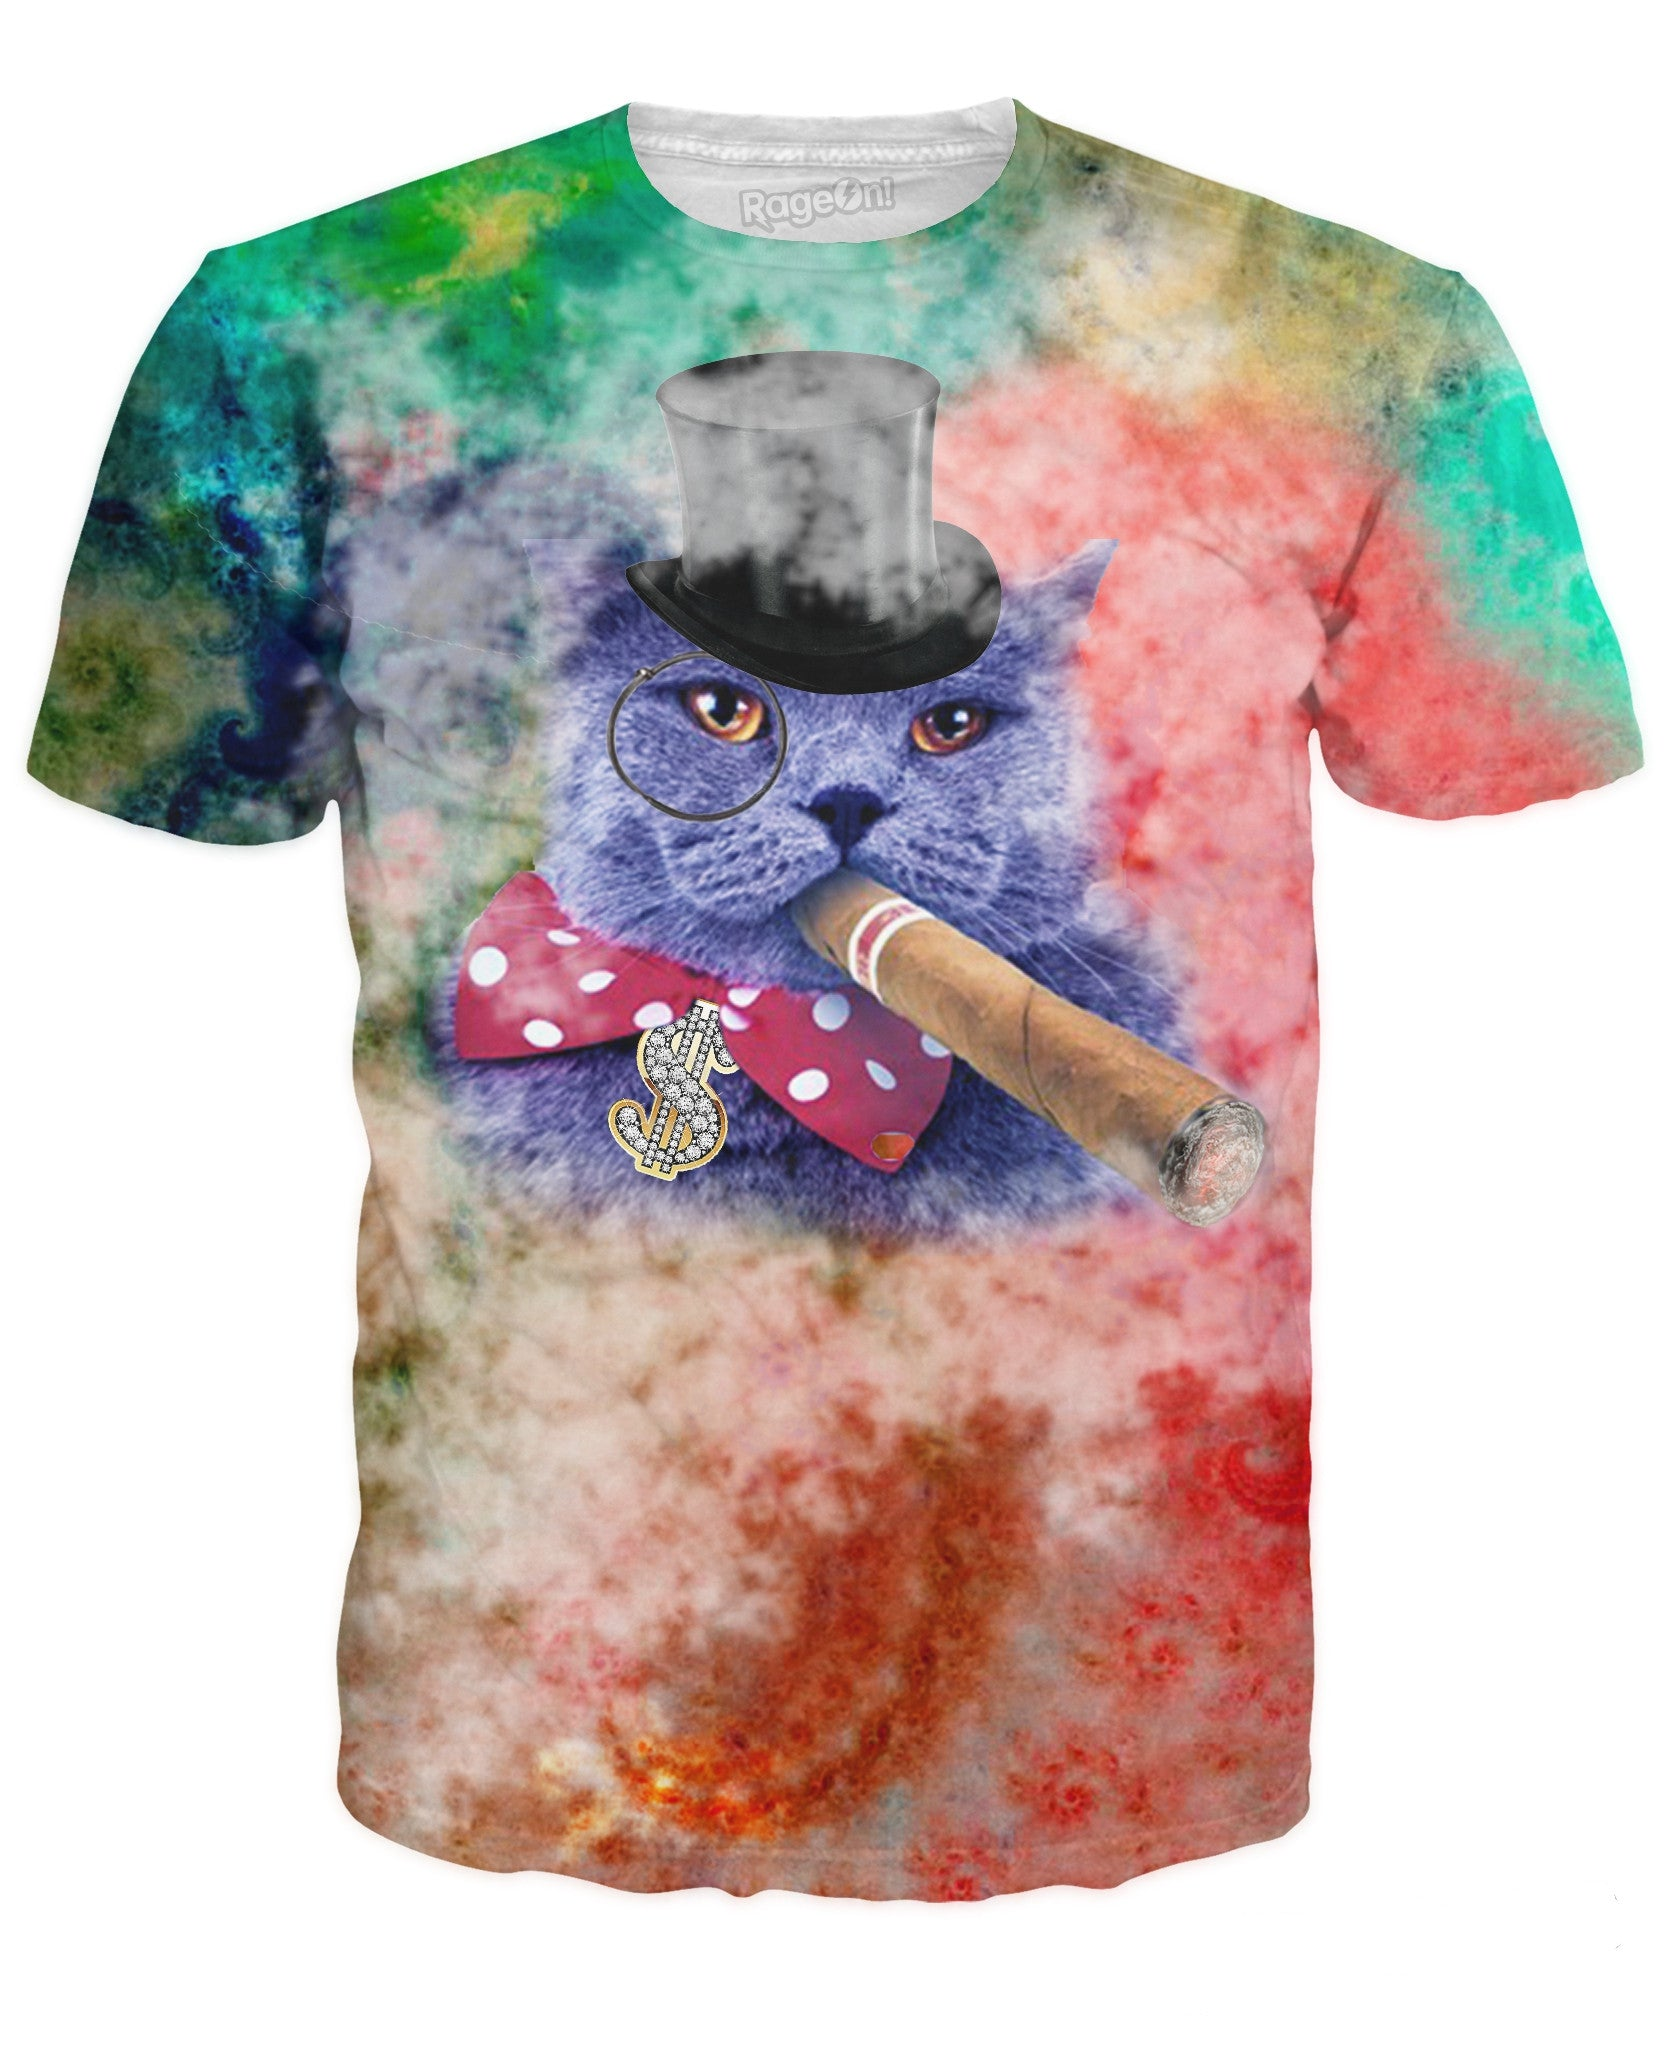 Cigar Cat T-Shirt